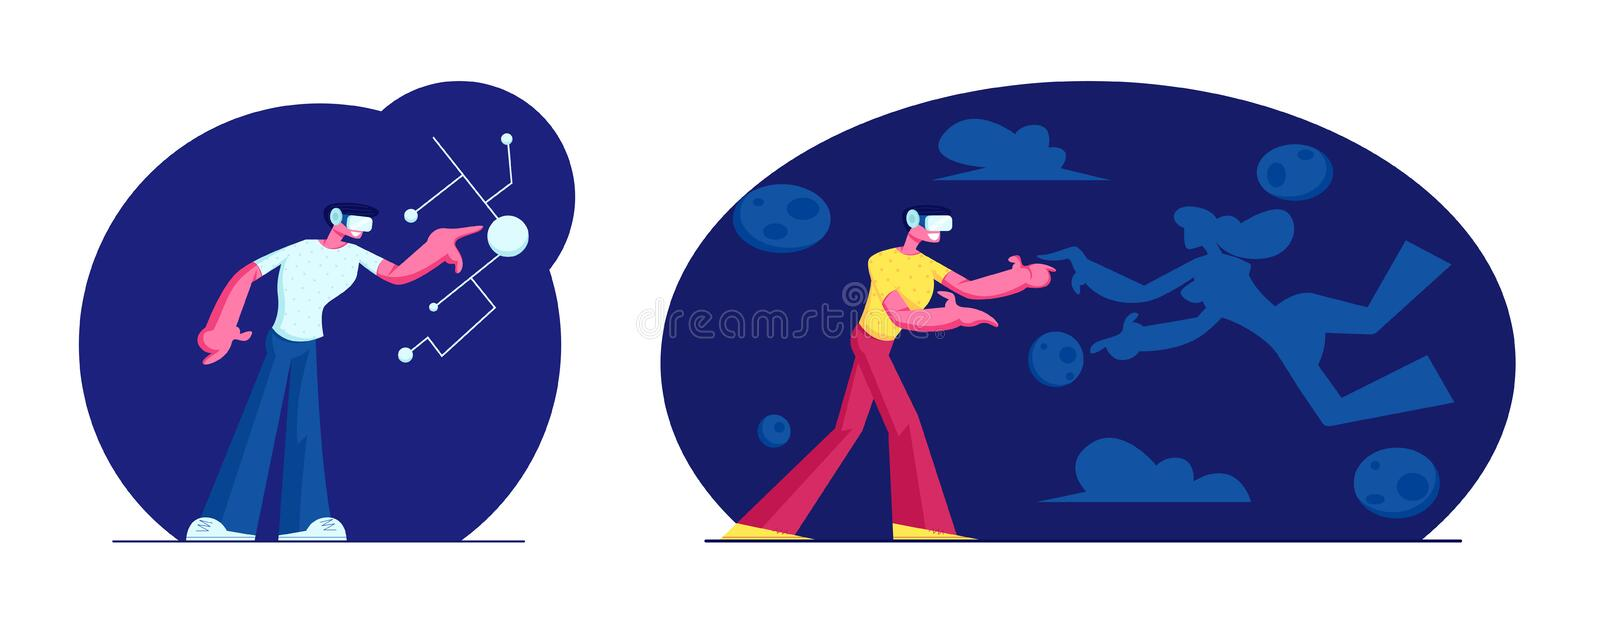 Enthusiastic Men Using Virtual Reality Glasses and Touching Vr Interface. Amazing Experience in Abstract Fantasy World royalty free illustration